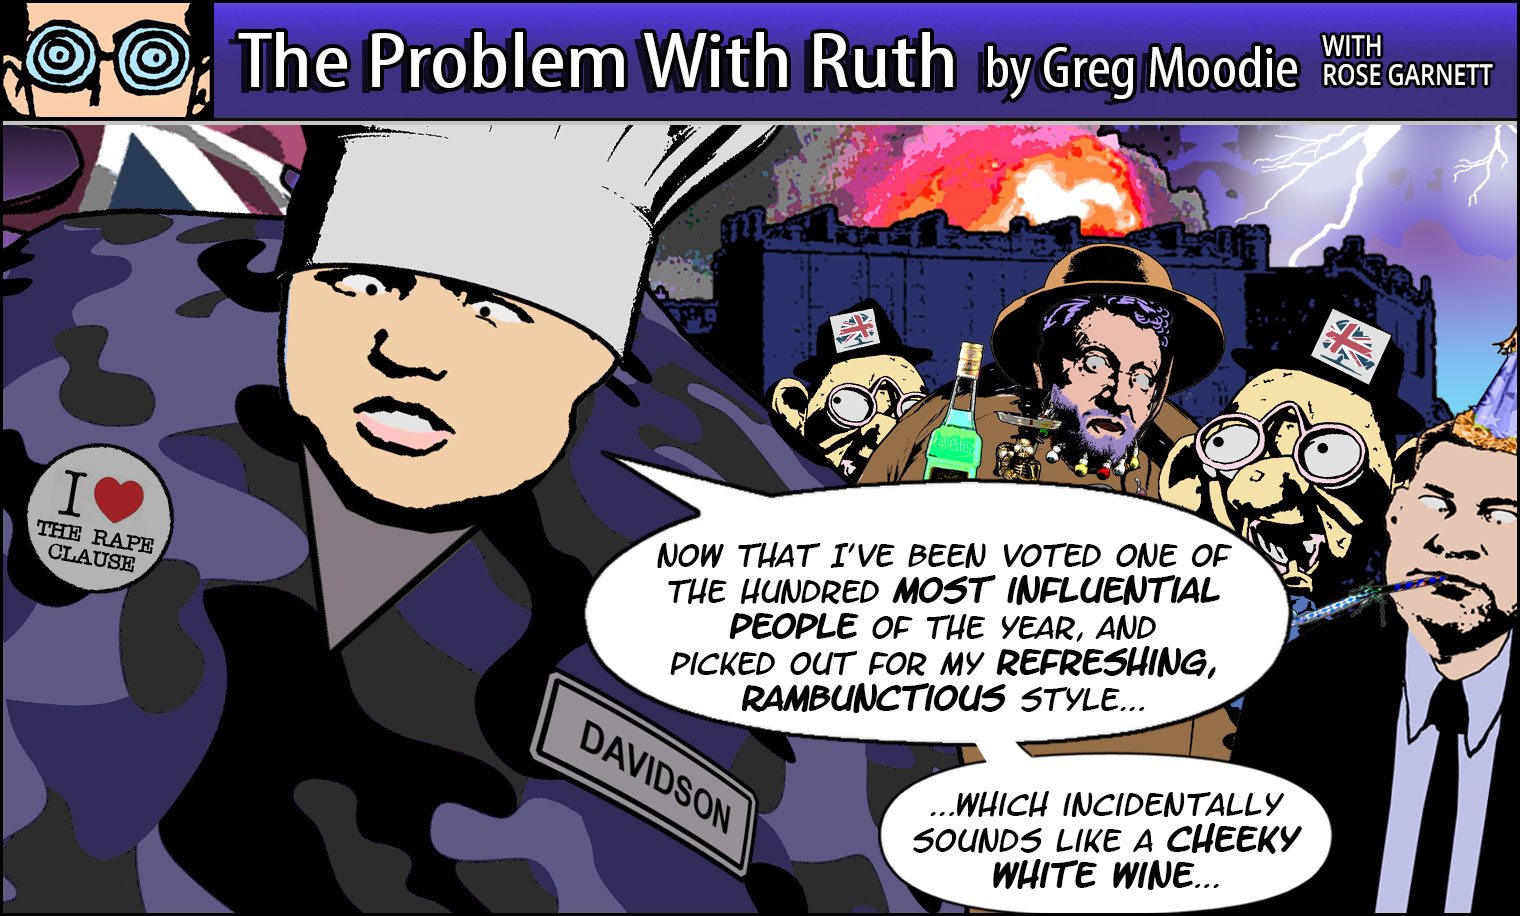 The Problem With Ruth